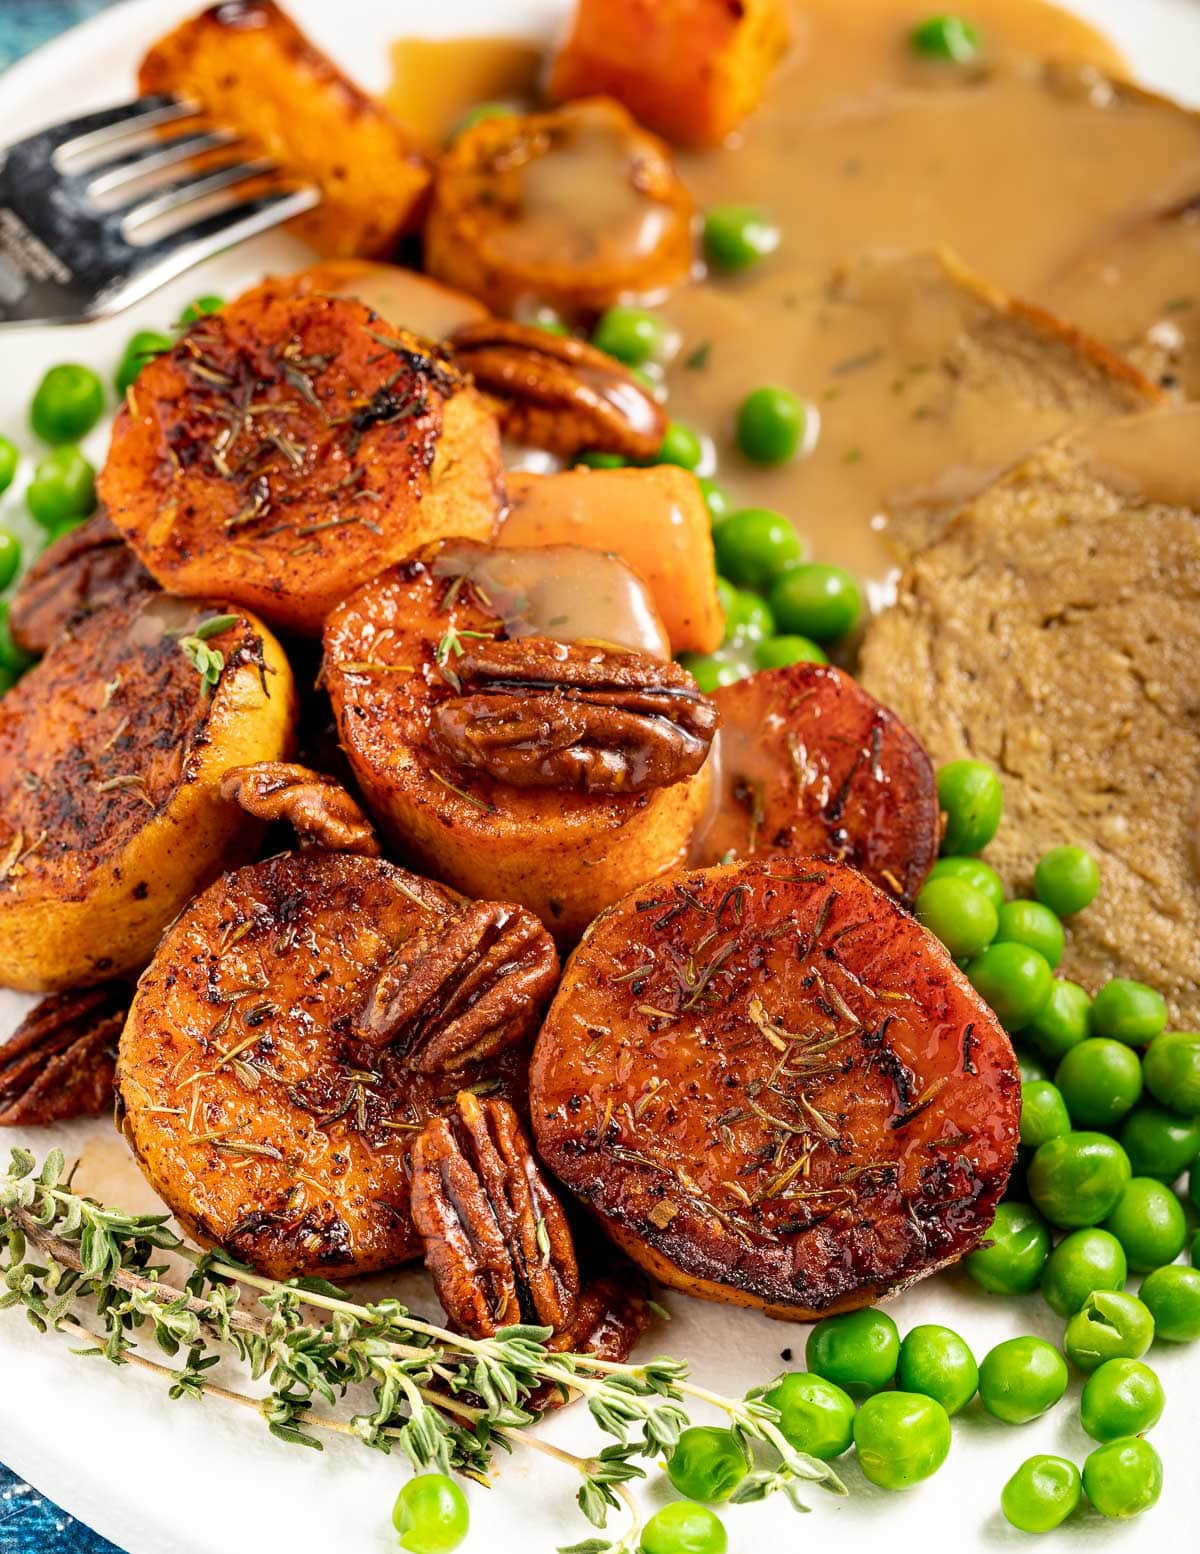 sweet potatoes with pecan nuts on a plate with peas